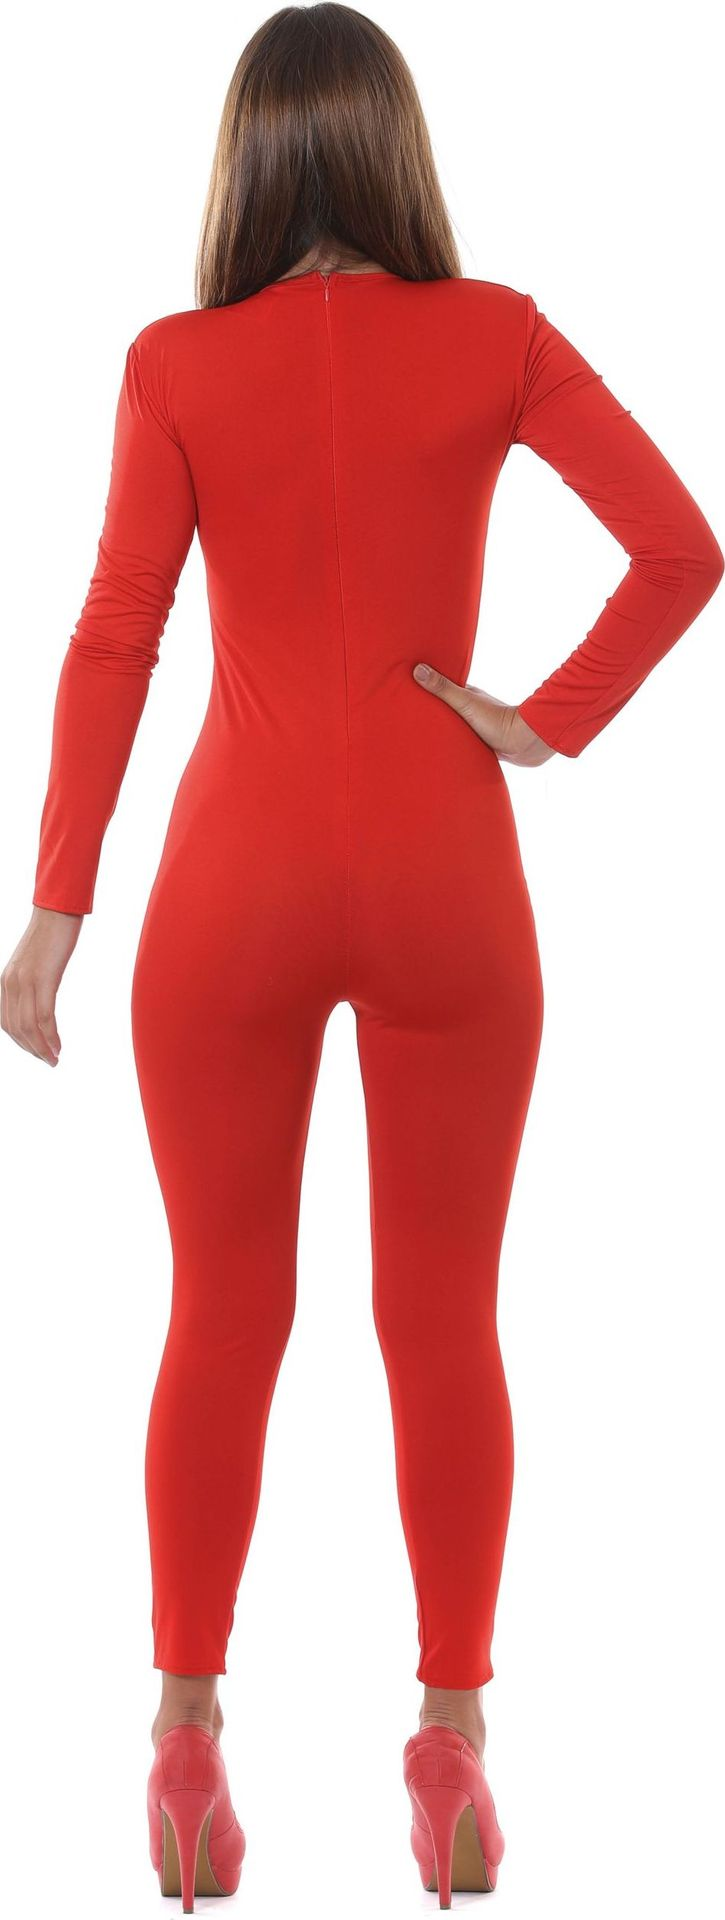 Rode jumpsuit dames